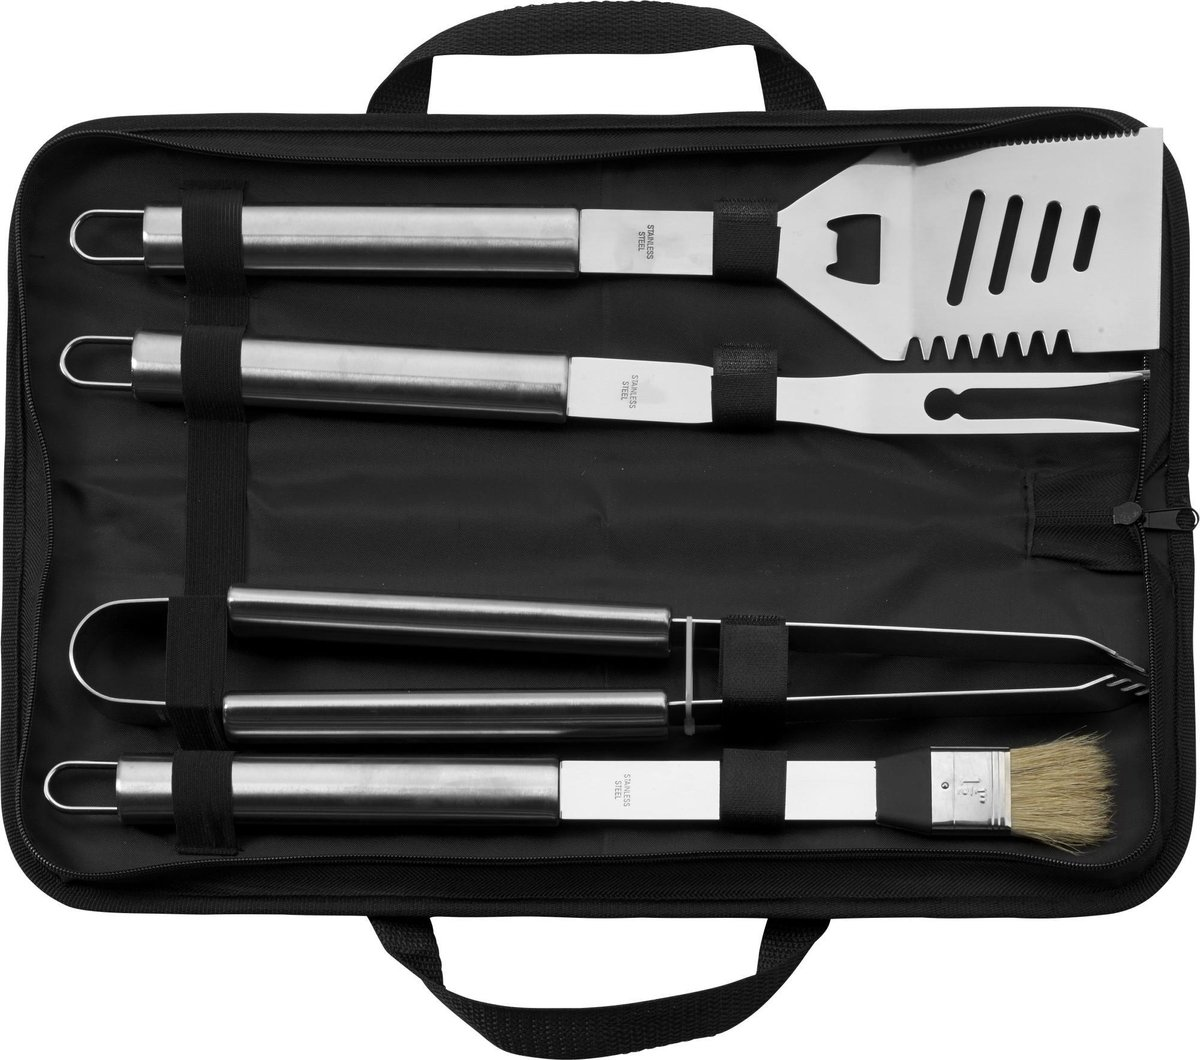 4-Delige ( RVS )  Complete BBQ accessoires set - Zomer Topper  Barbecue Tang, Barbecue Invetter, Bbq